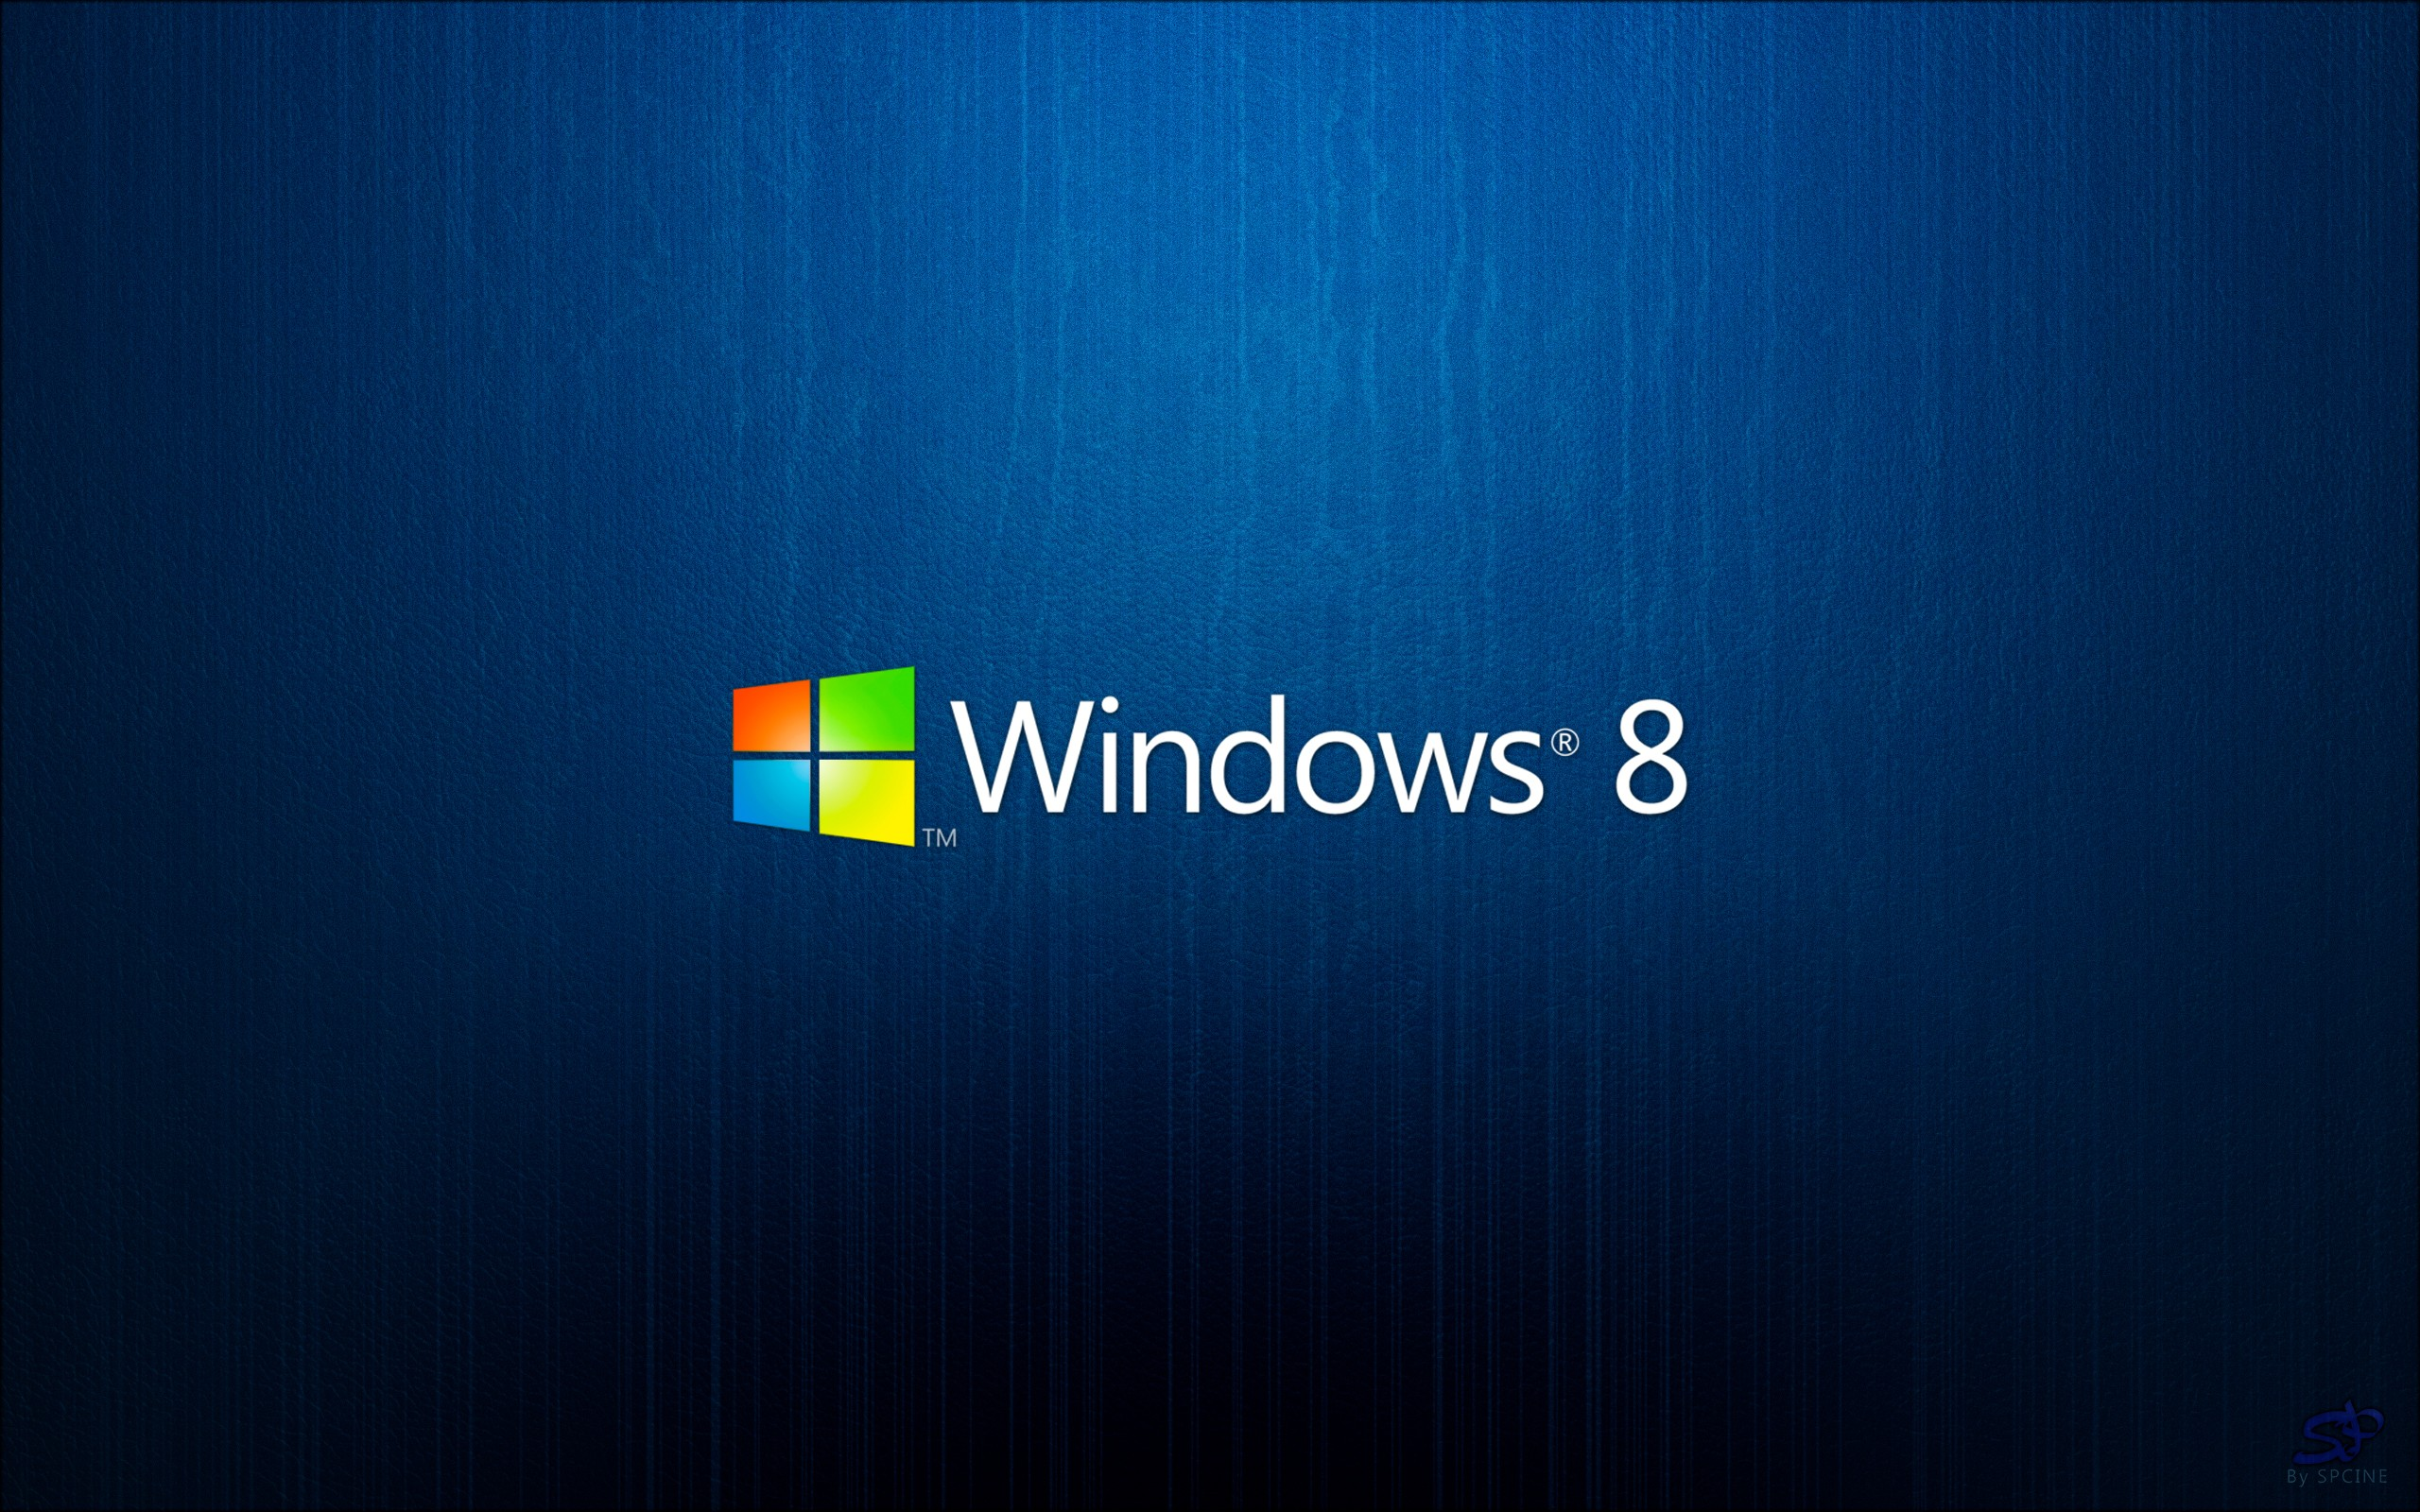 Windows 8 Management And Maintenance Course